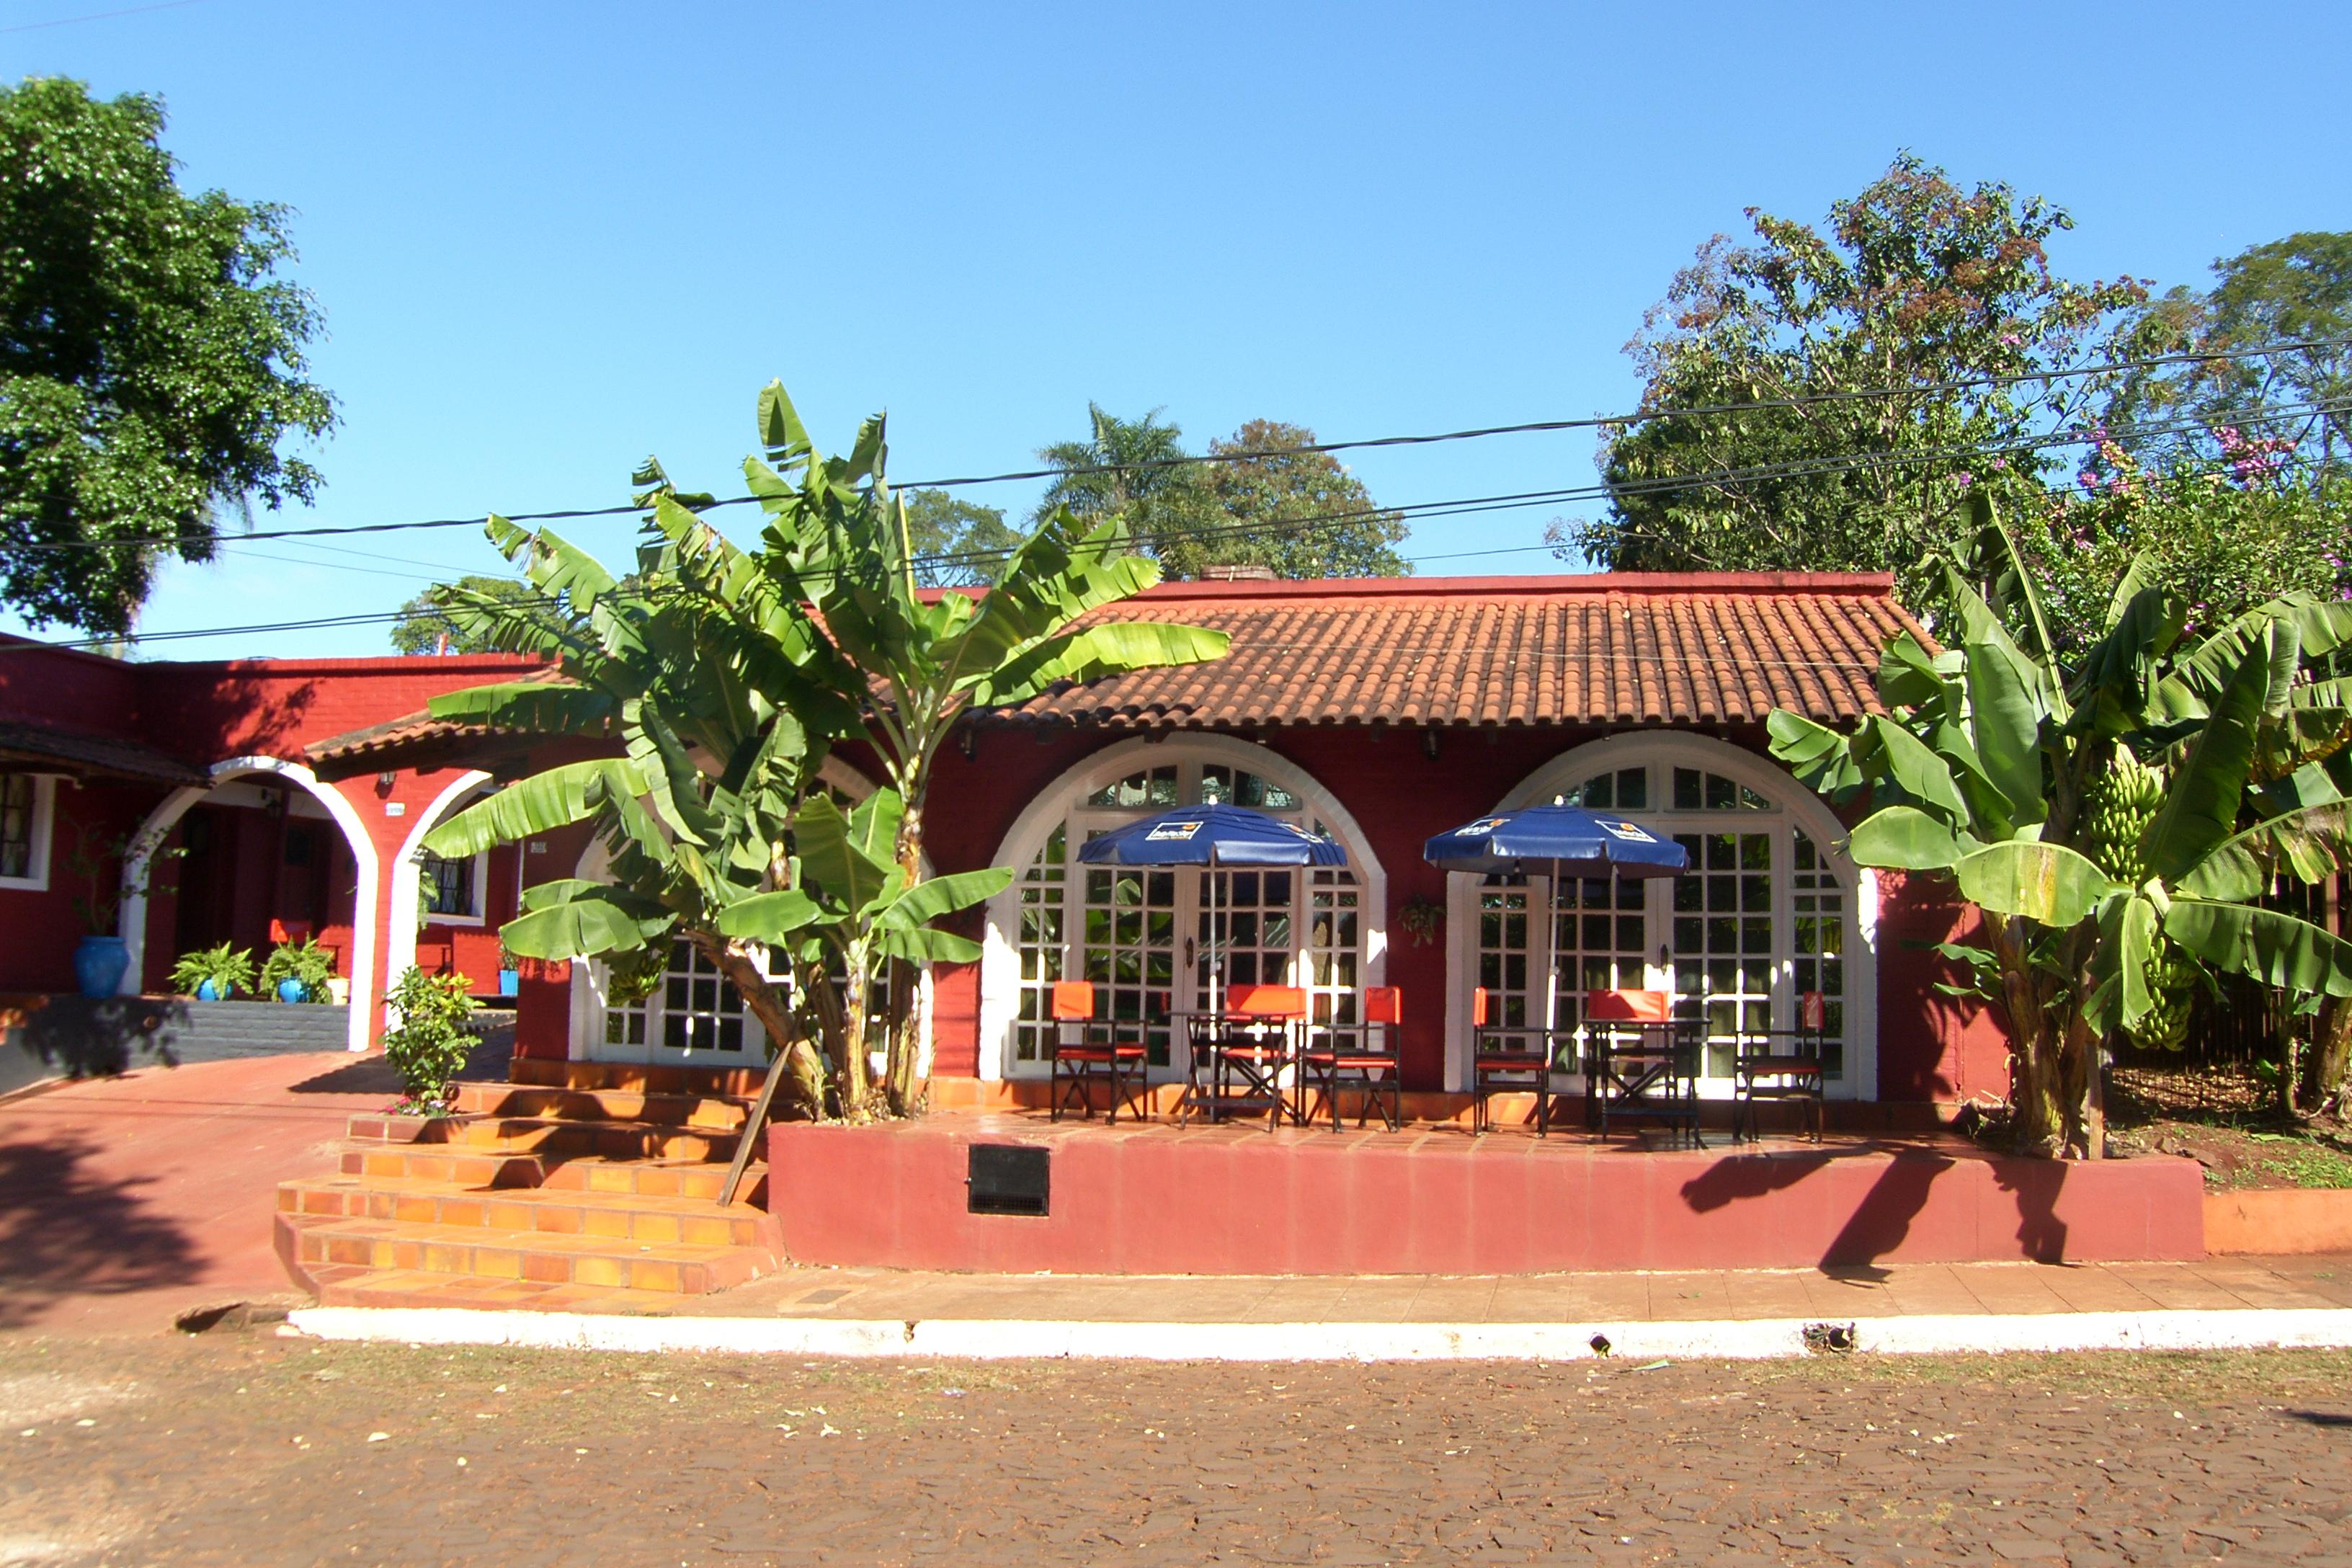 Hotel Iguazu Royal